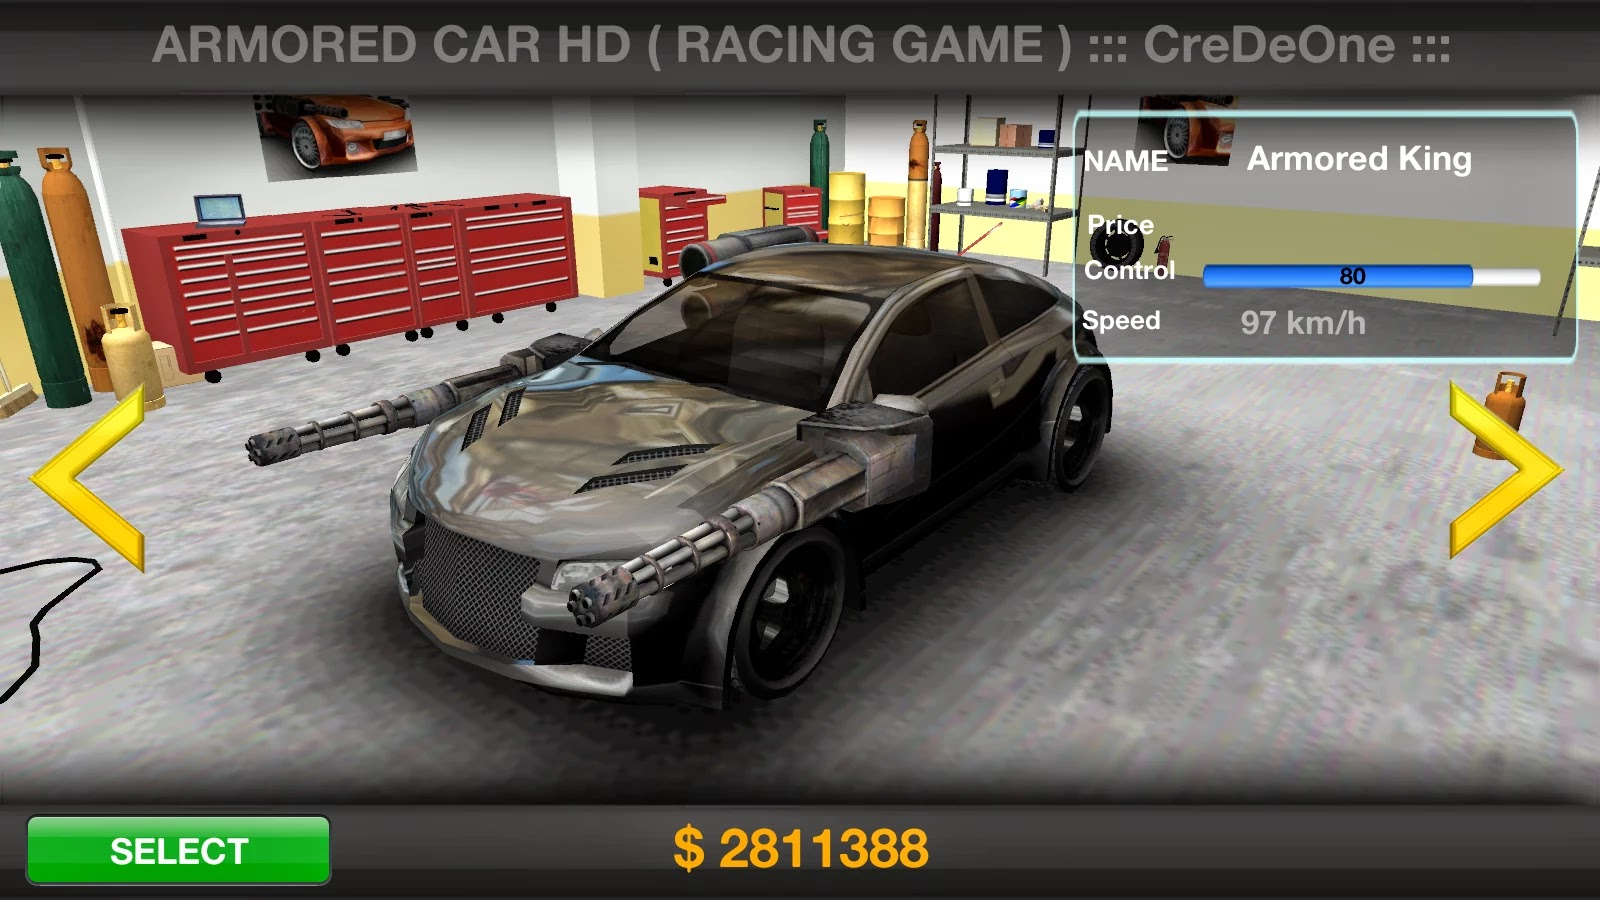 Screenshot Game Armored Car HD